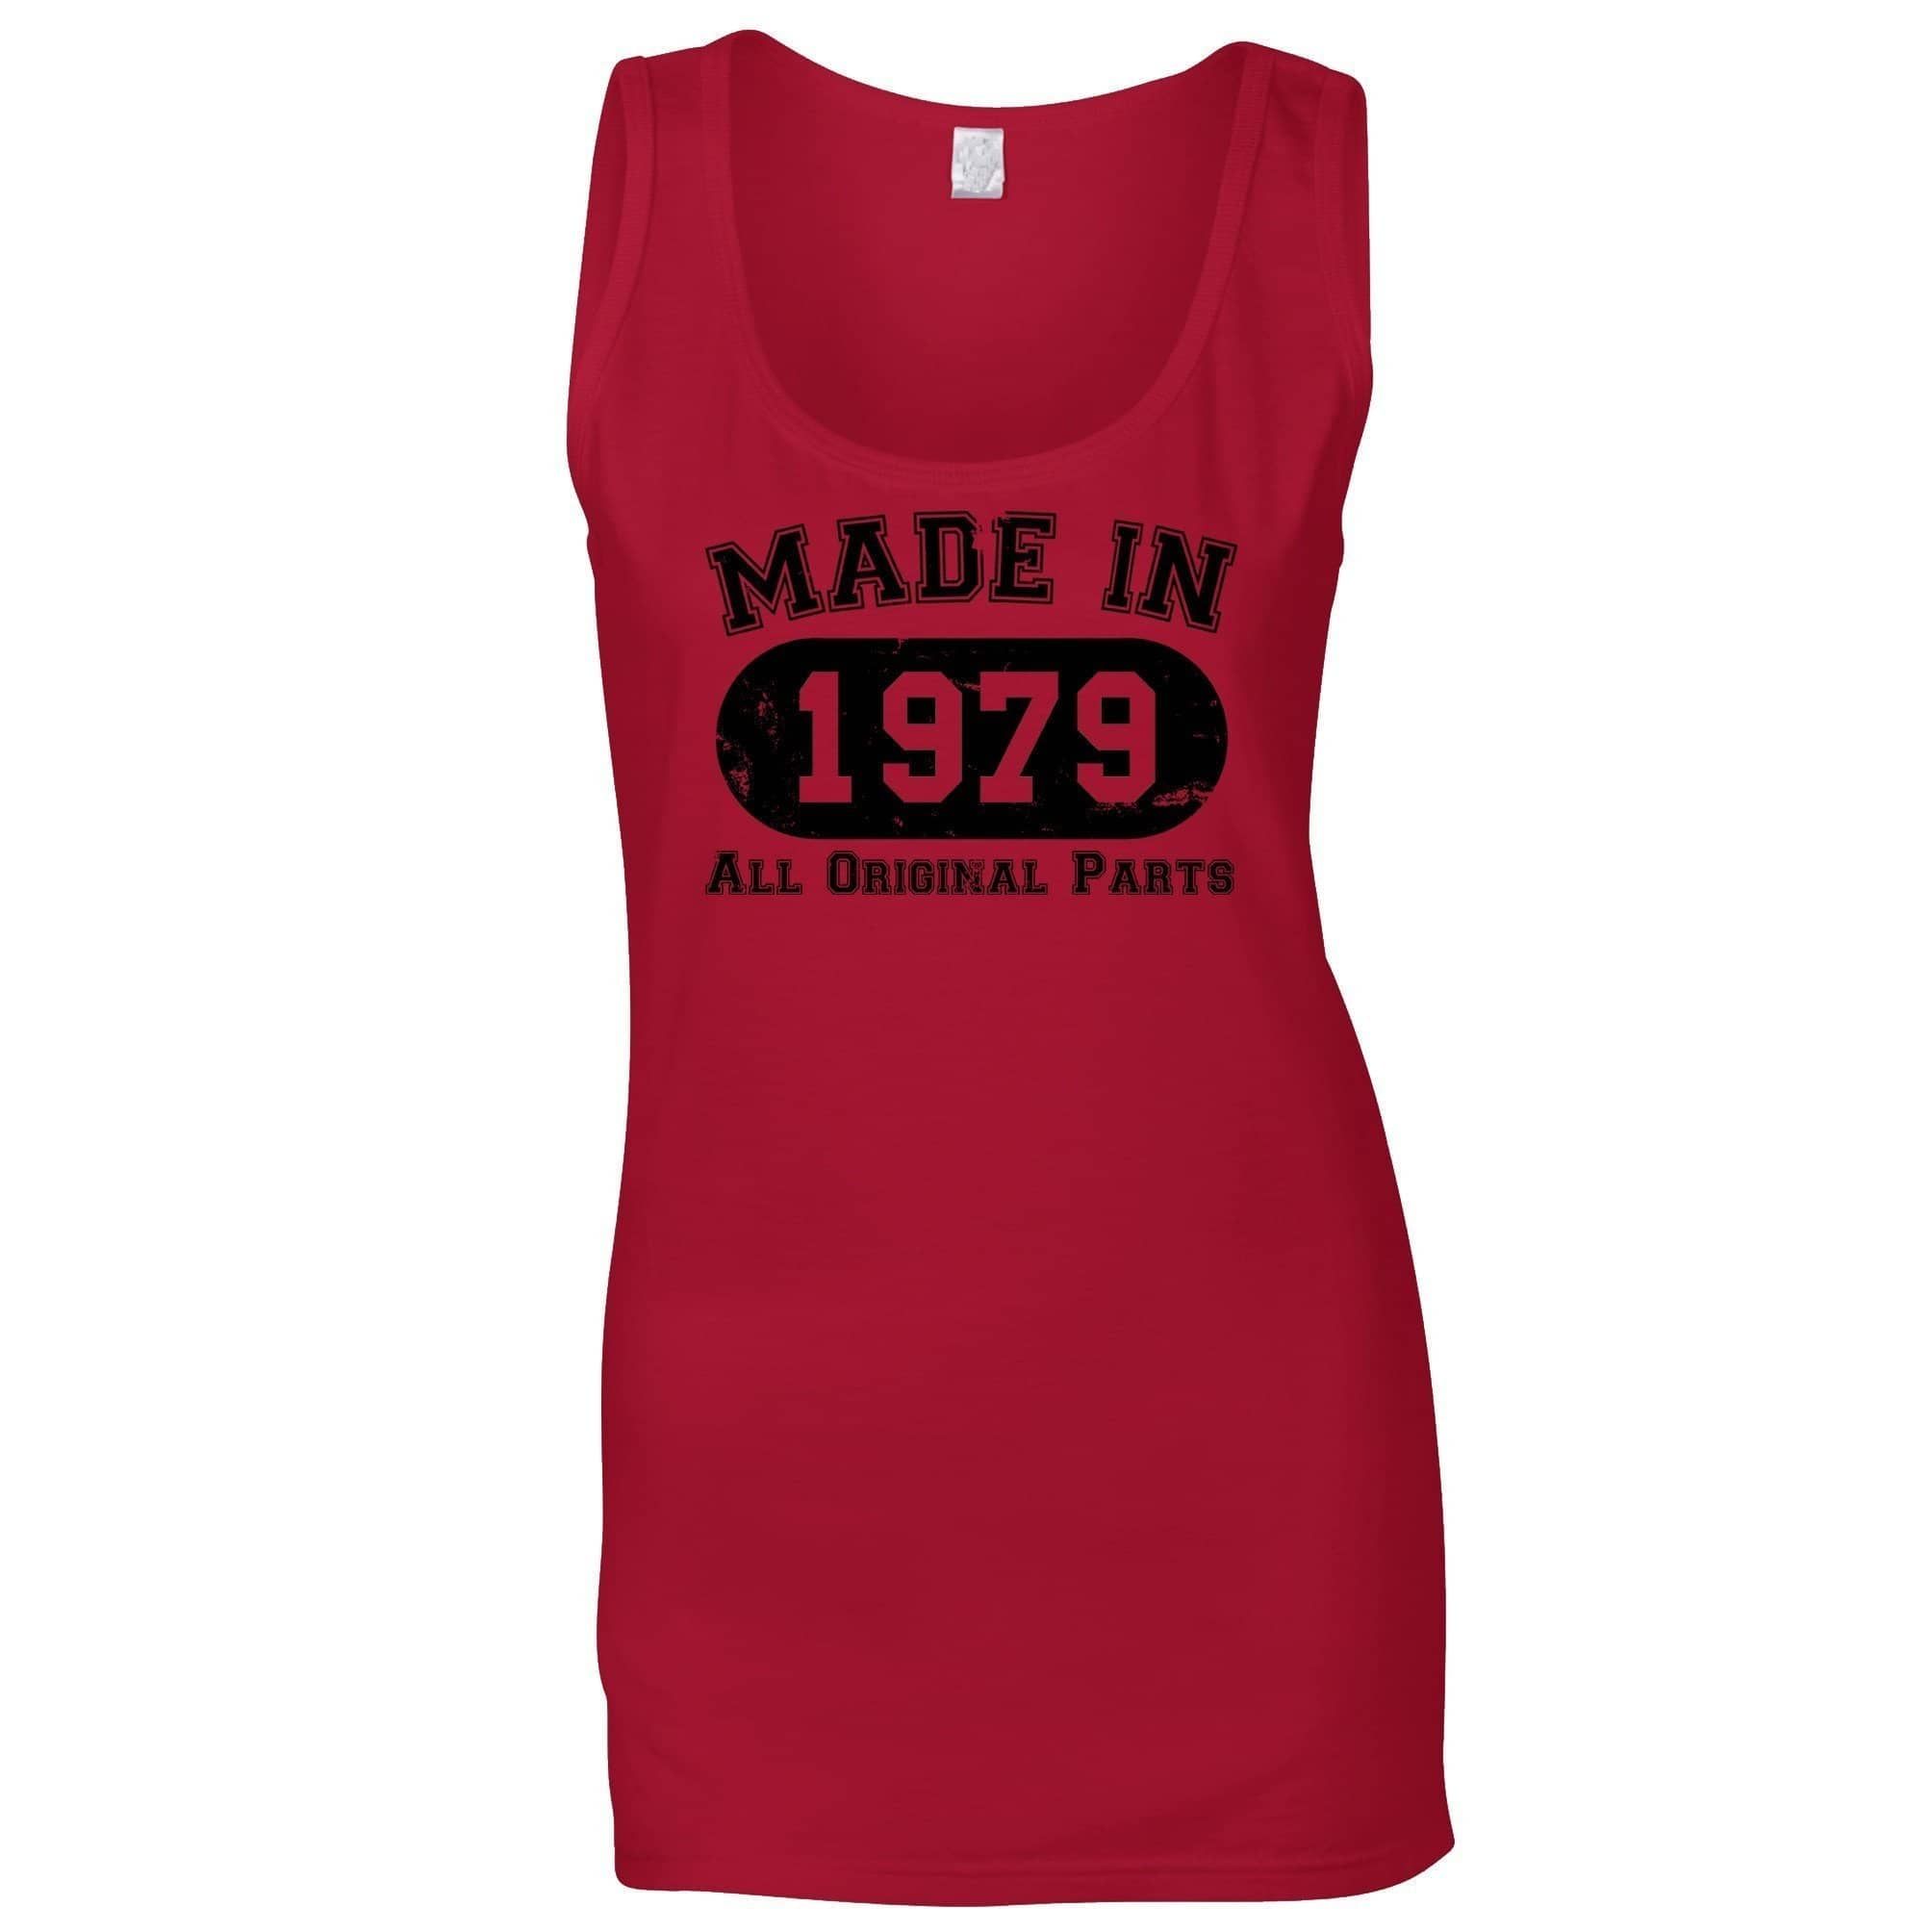 Made in 1979 All Original Parts Womens Vest [Distressed]